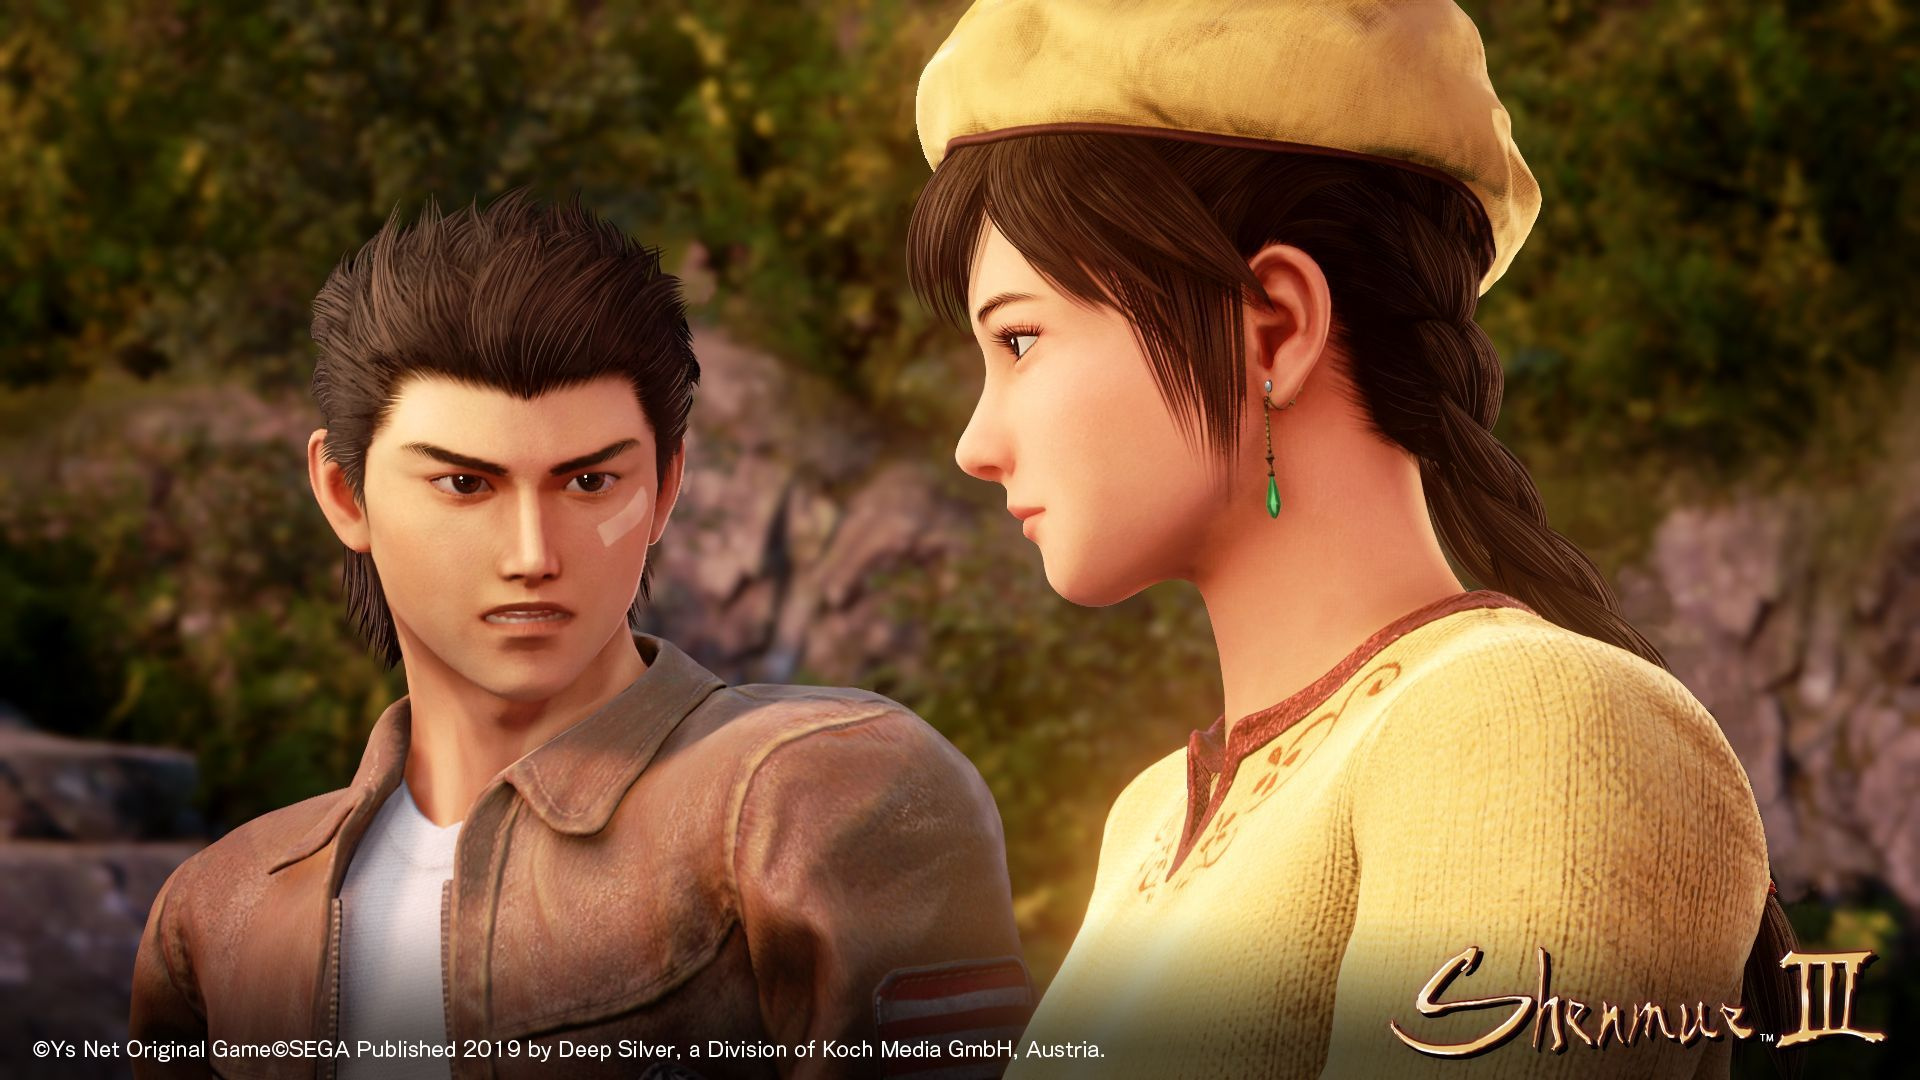 Shenmue 3 is out now after an 18 year wait